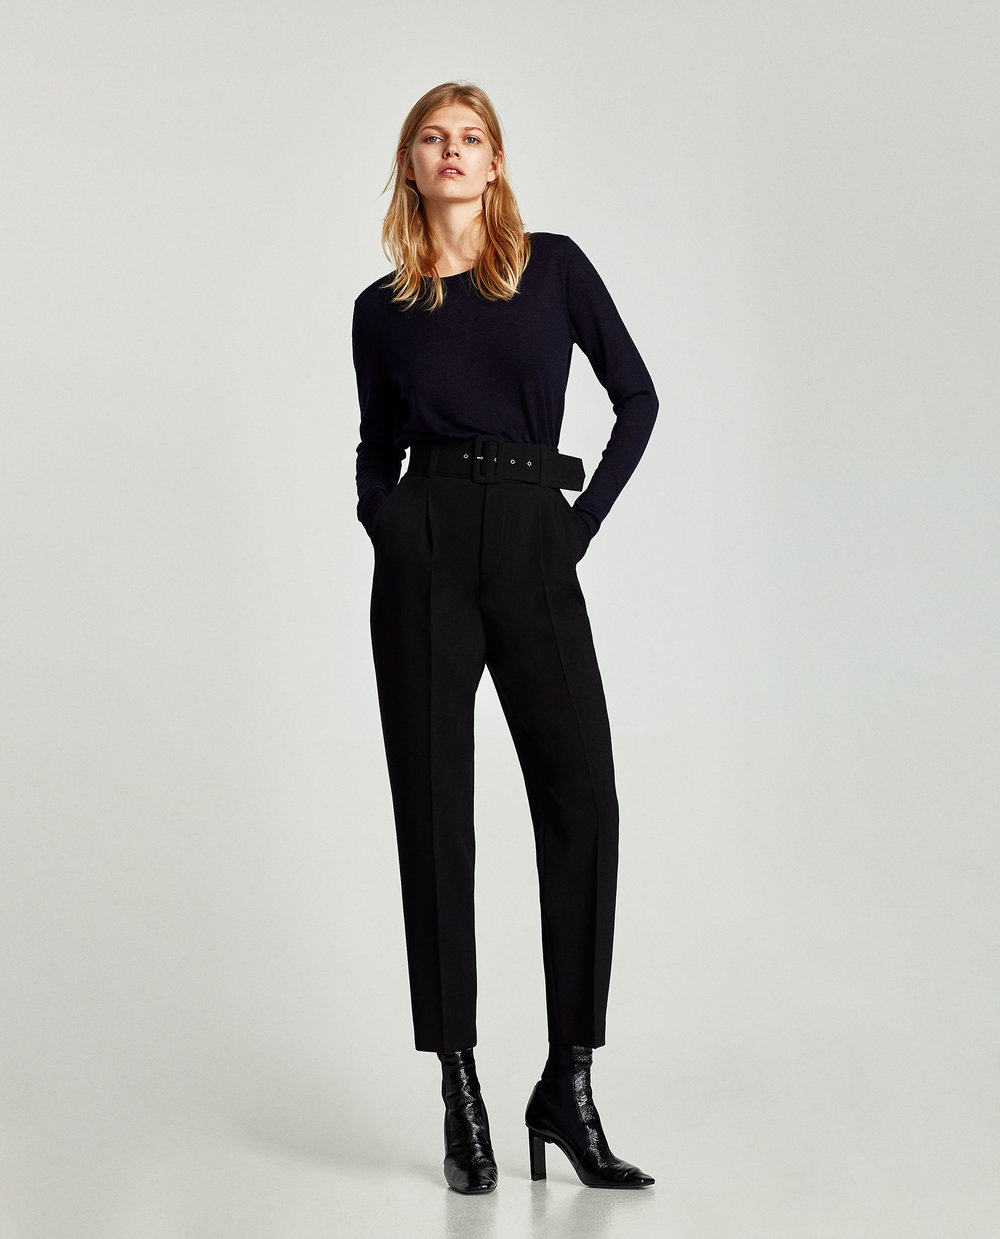 Zara Crepe Trousers with Belt